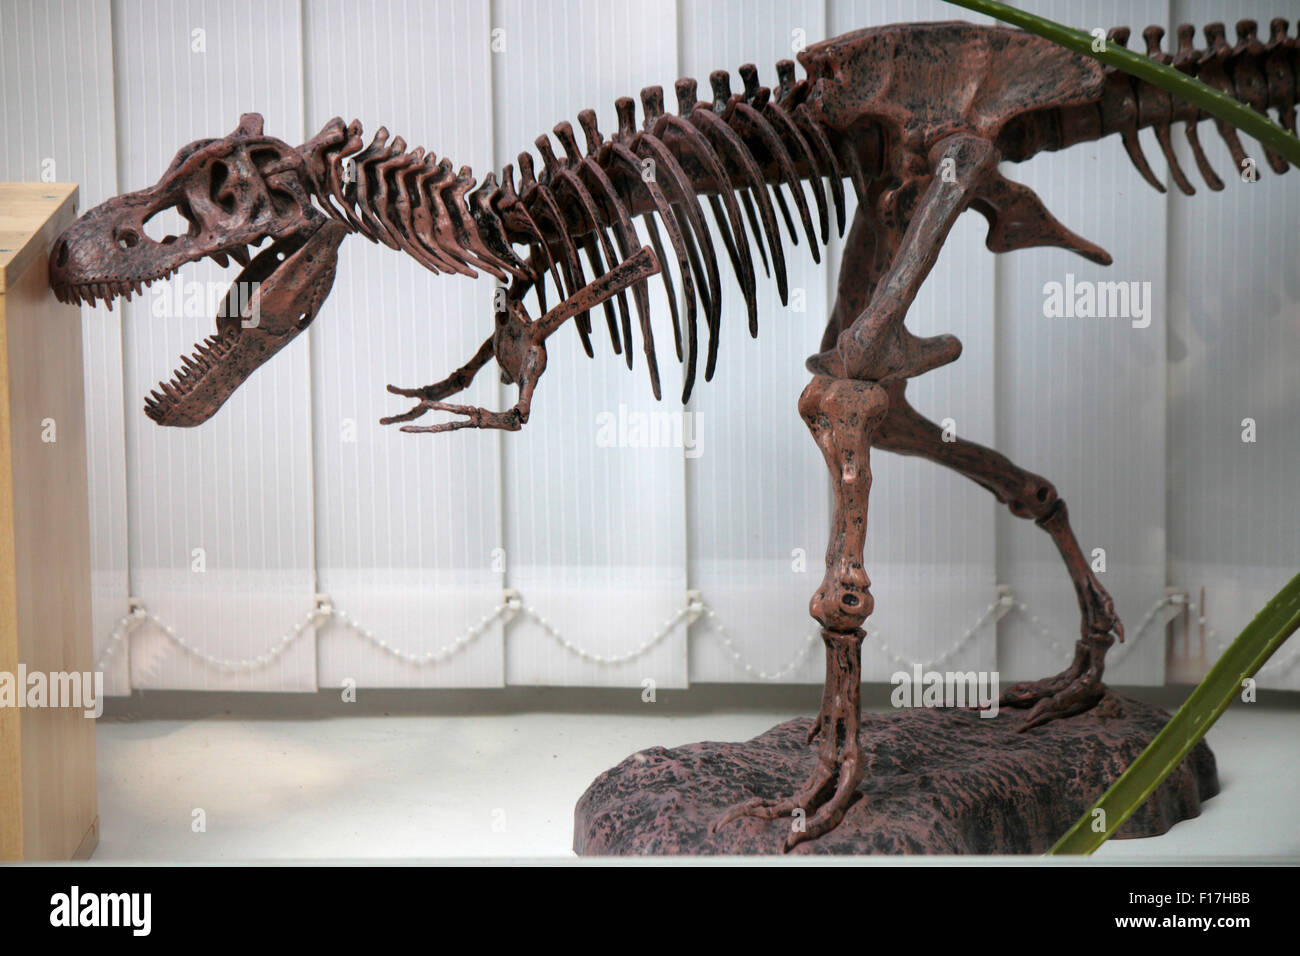 Skeletts Photos & Skeletts Images - Alamy